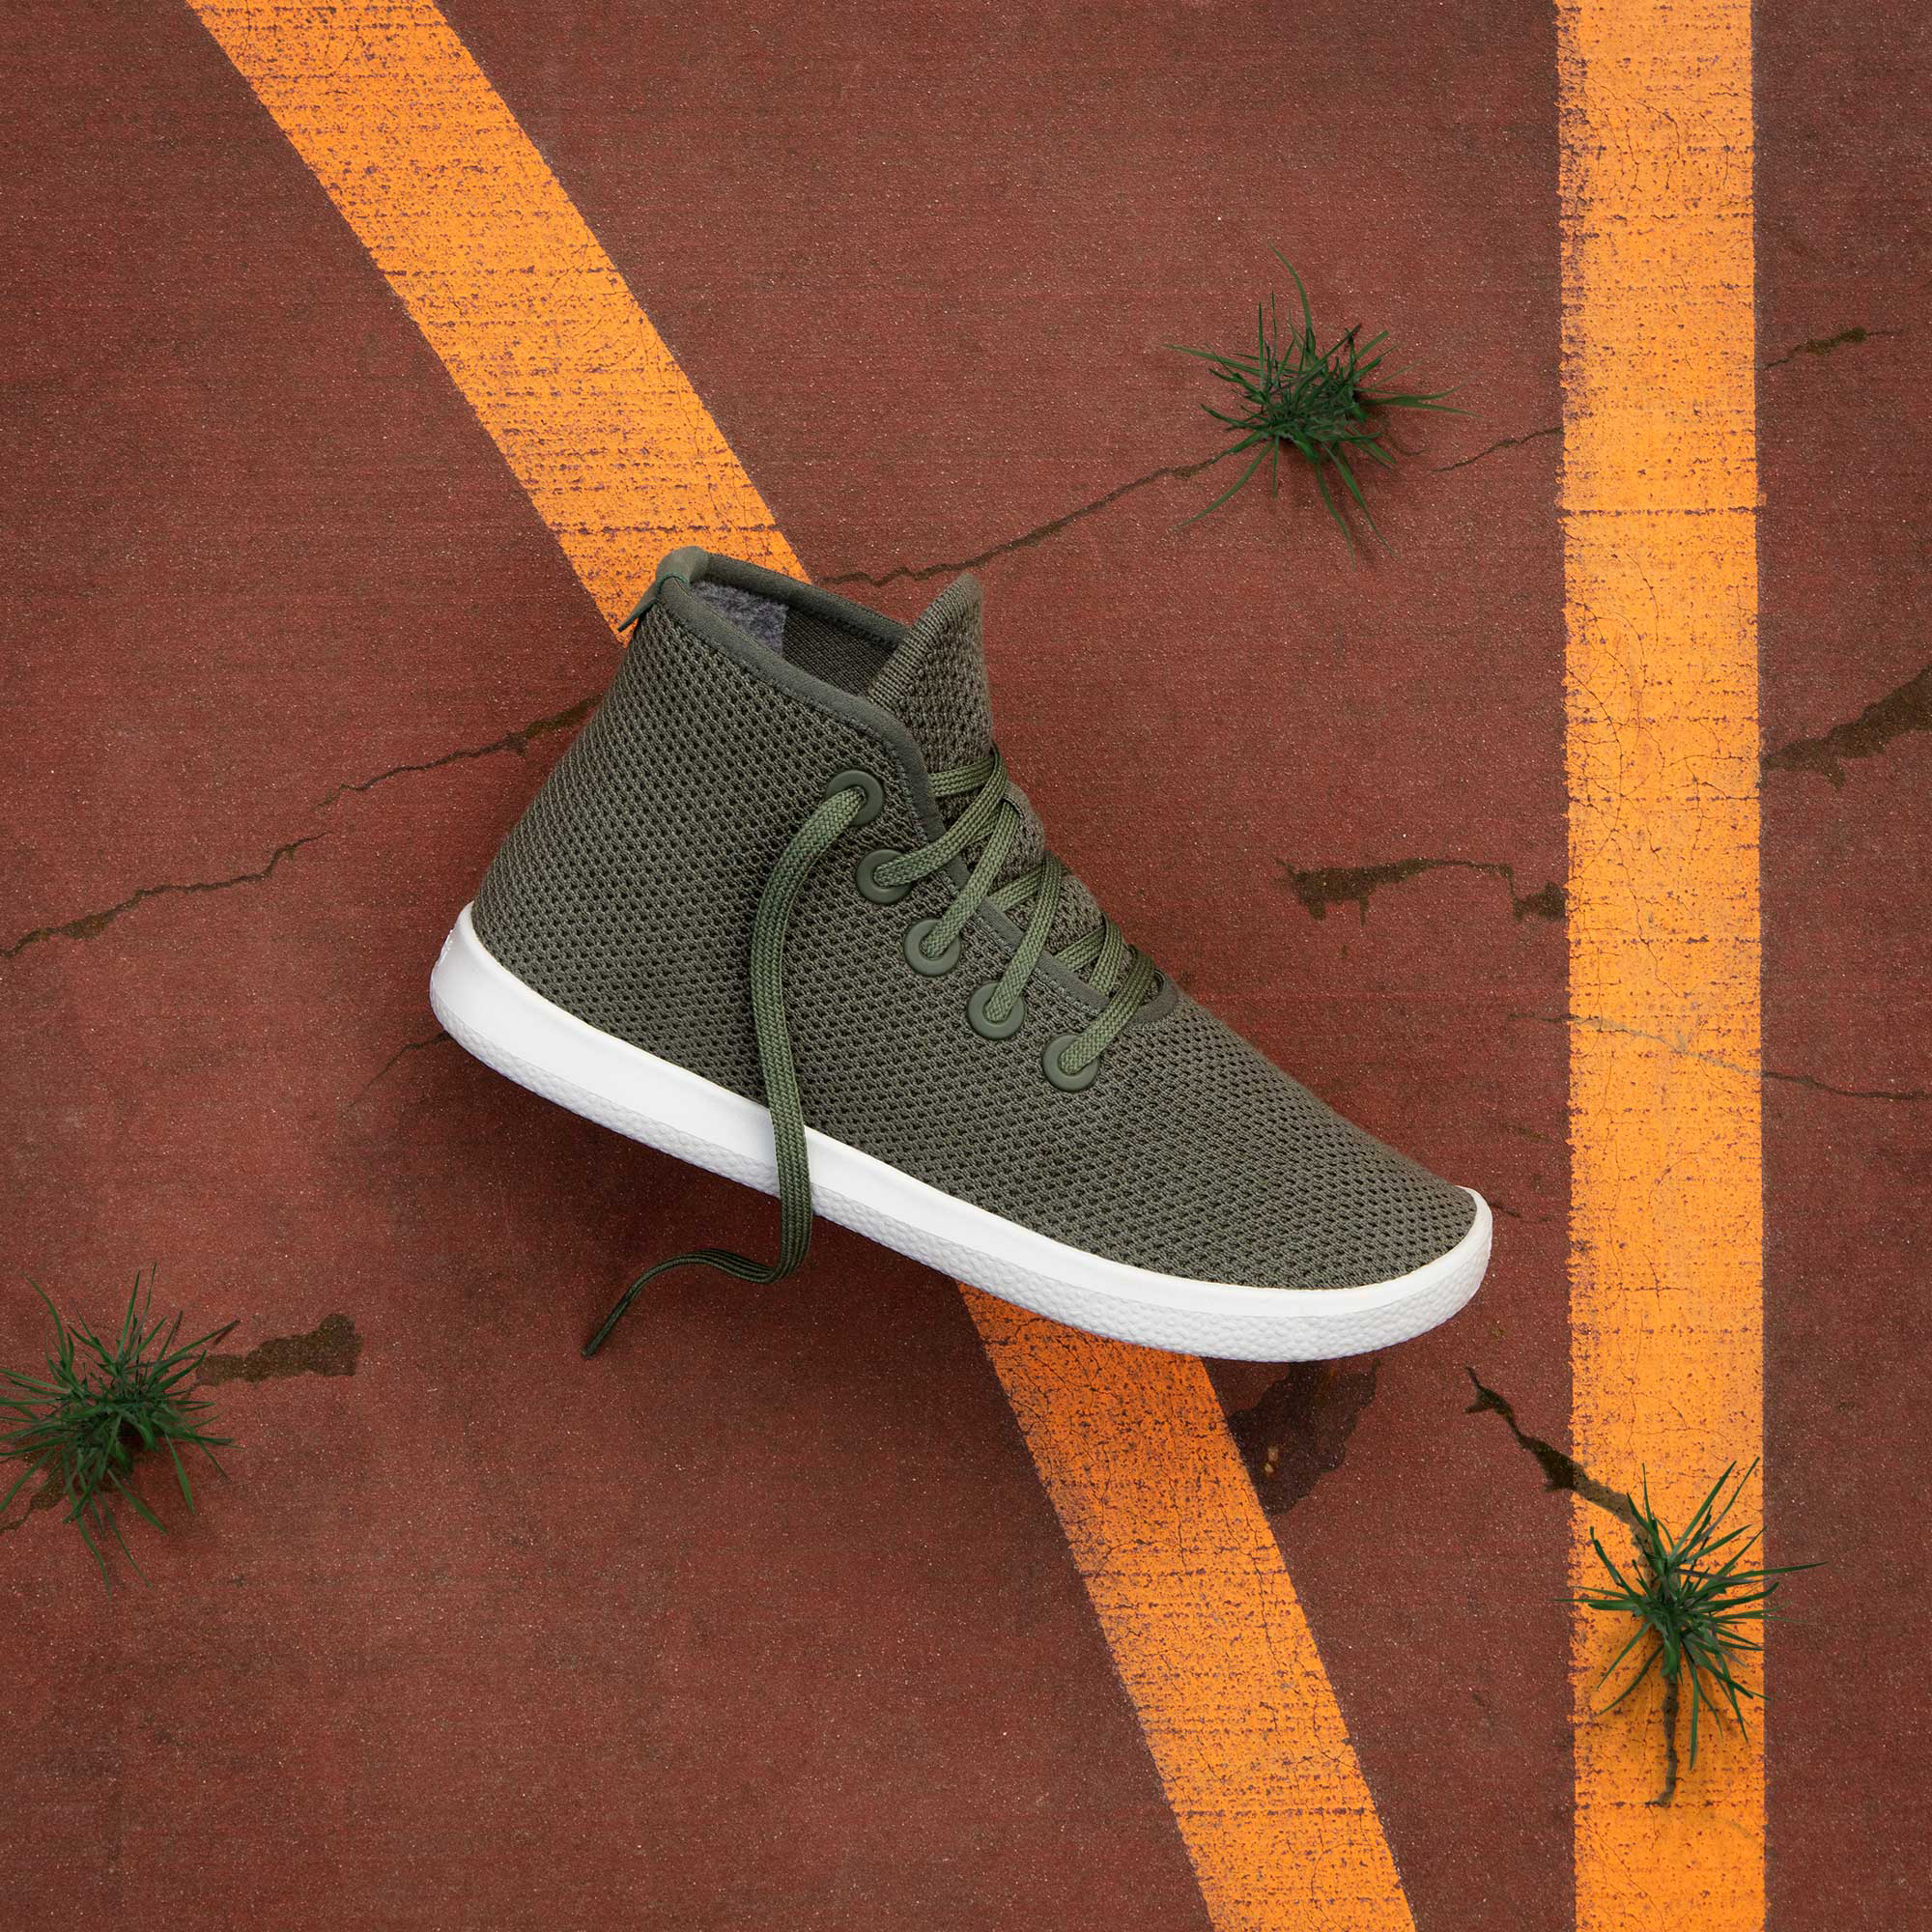 Comfortable High-Top Sneakers for